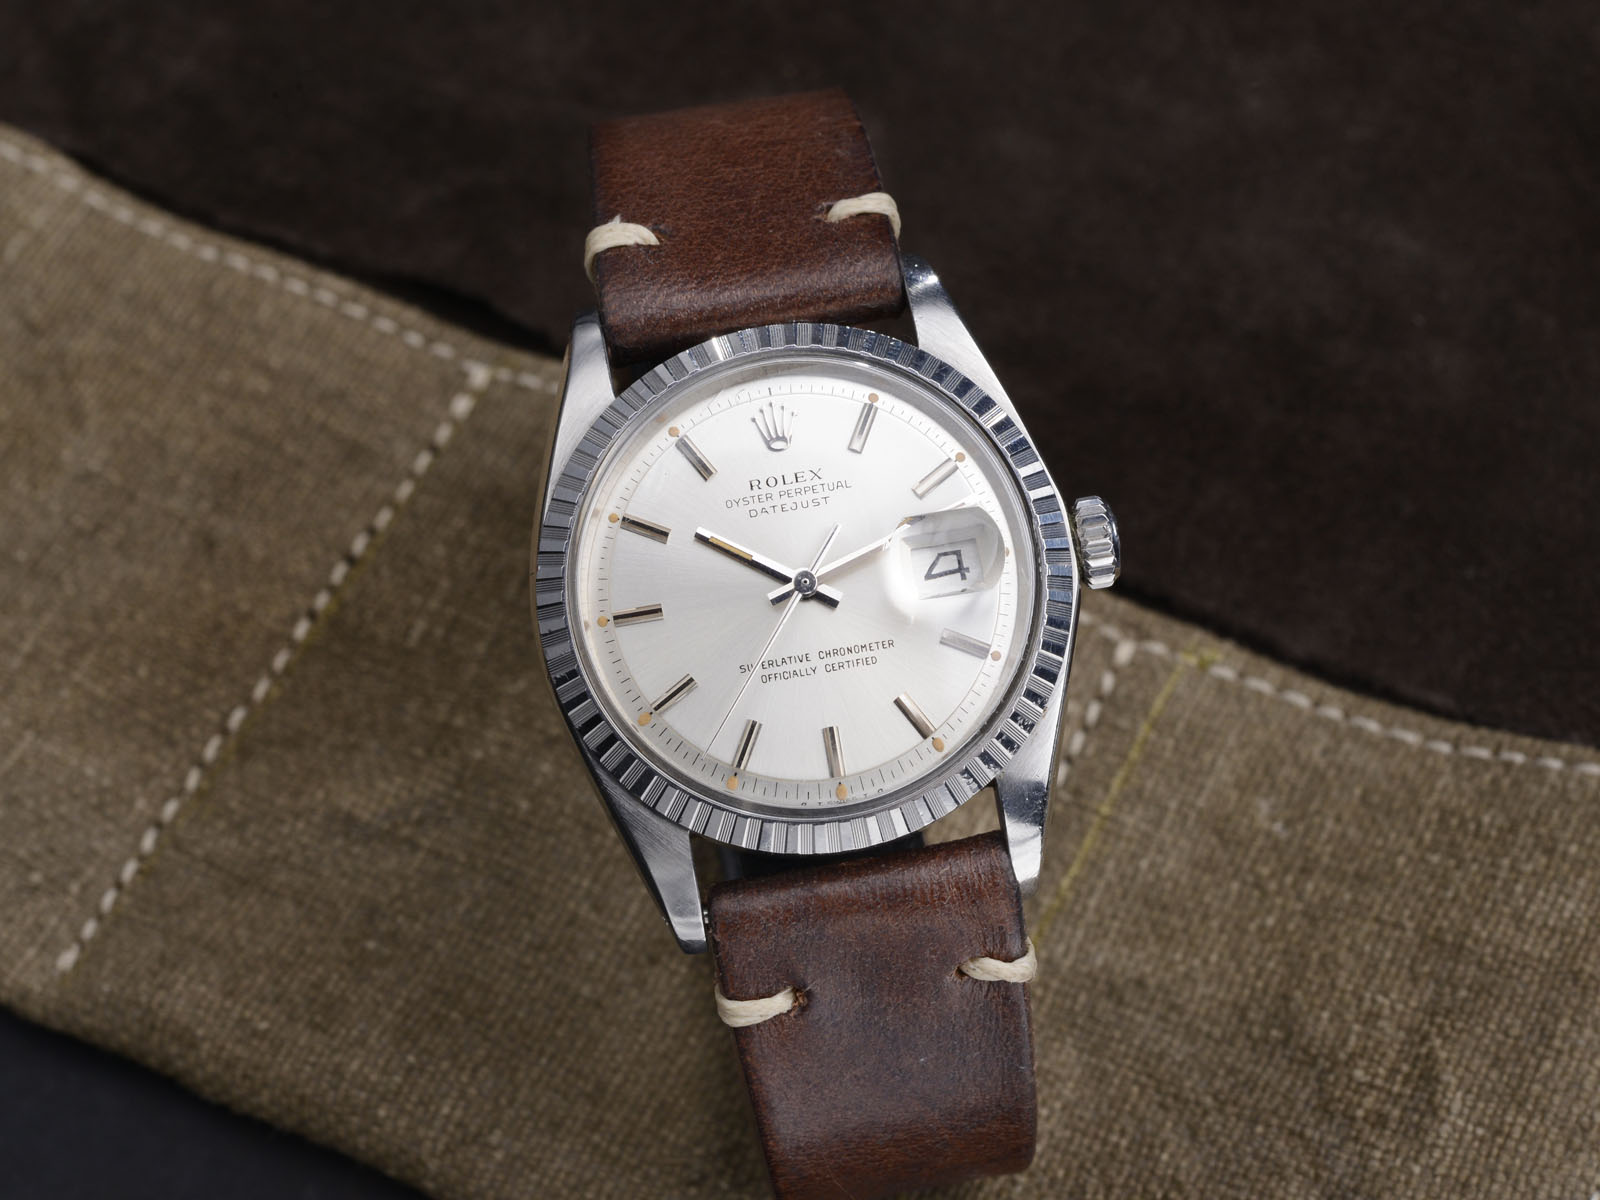 Fedex Box Prices >> ROLEX DATEJUST 1603 SILVER SIGMA DIAL (HOLD) - Bulang and Sons